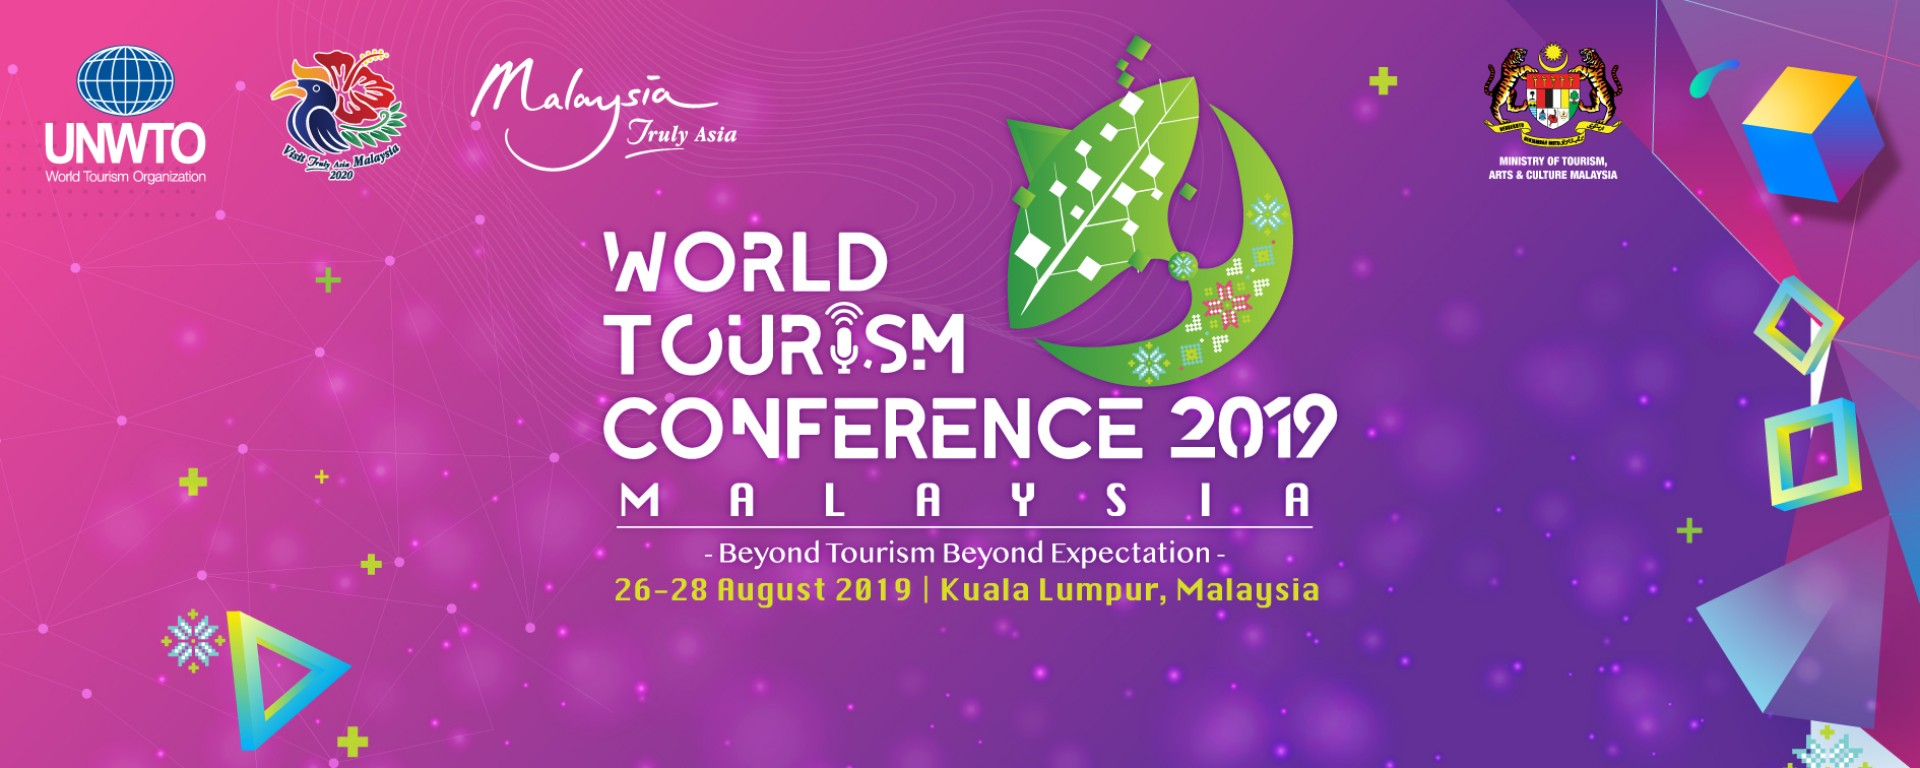 <div class='slider-left'><span class='caption'></span><div class='action '><a href='http://asiapacific.unwto.org/event/wtc2019-malaysia' class='btn btn-danger btn-lg' target='_blank'>Read More</a></div></div>